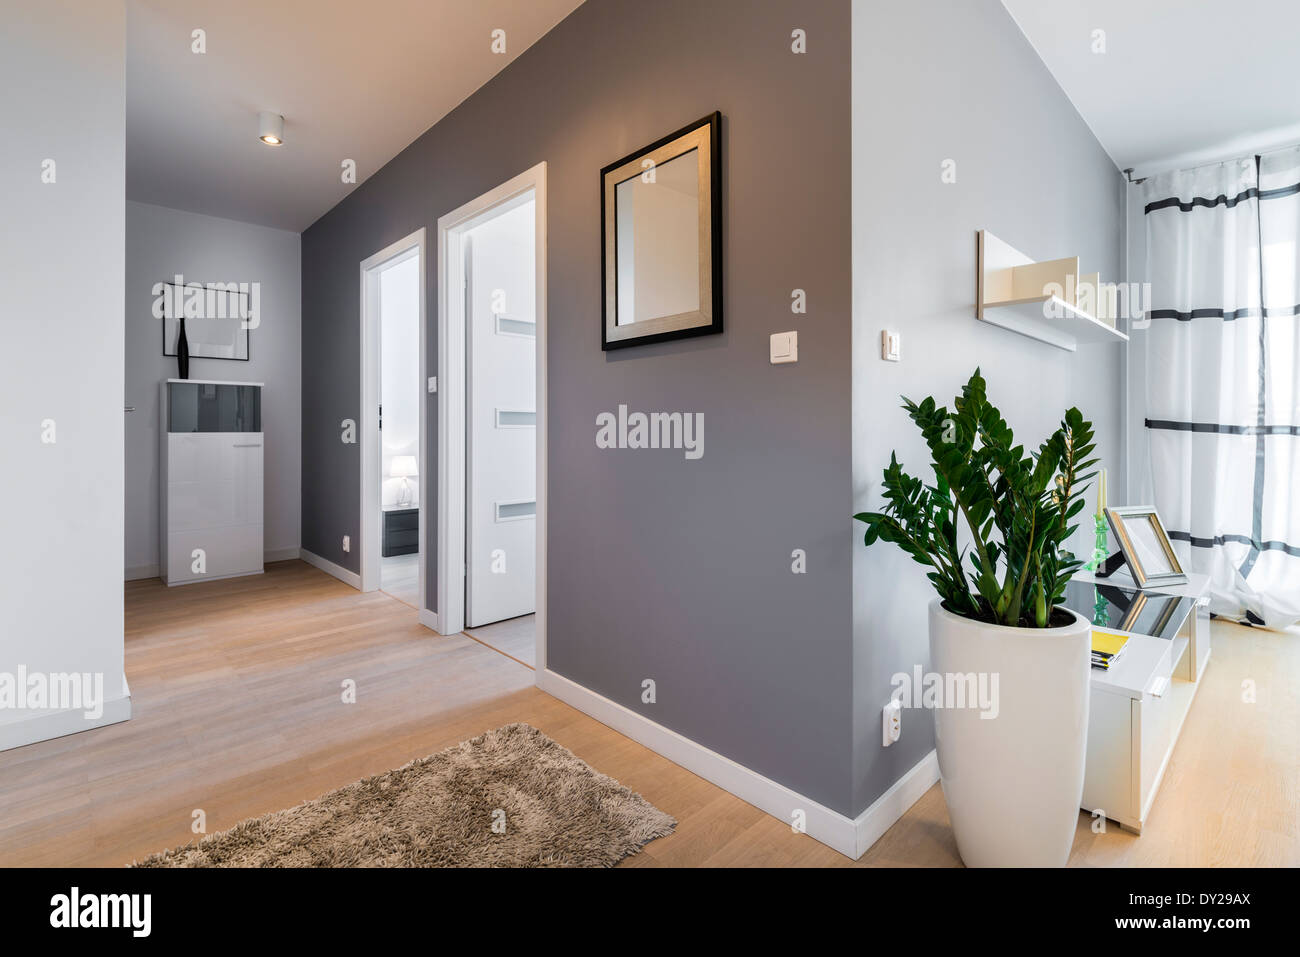 Corridor and living room in modern apartment with gray walls stock photo royalty free image - Kleur corridor appartement ...